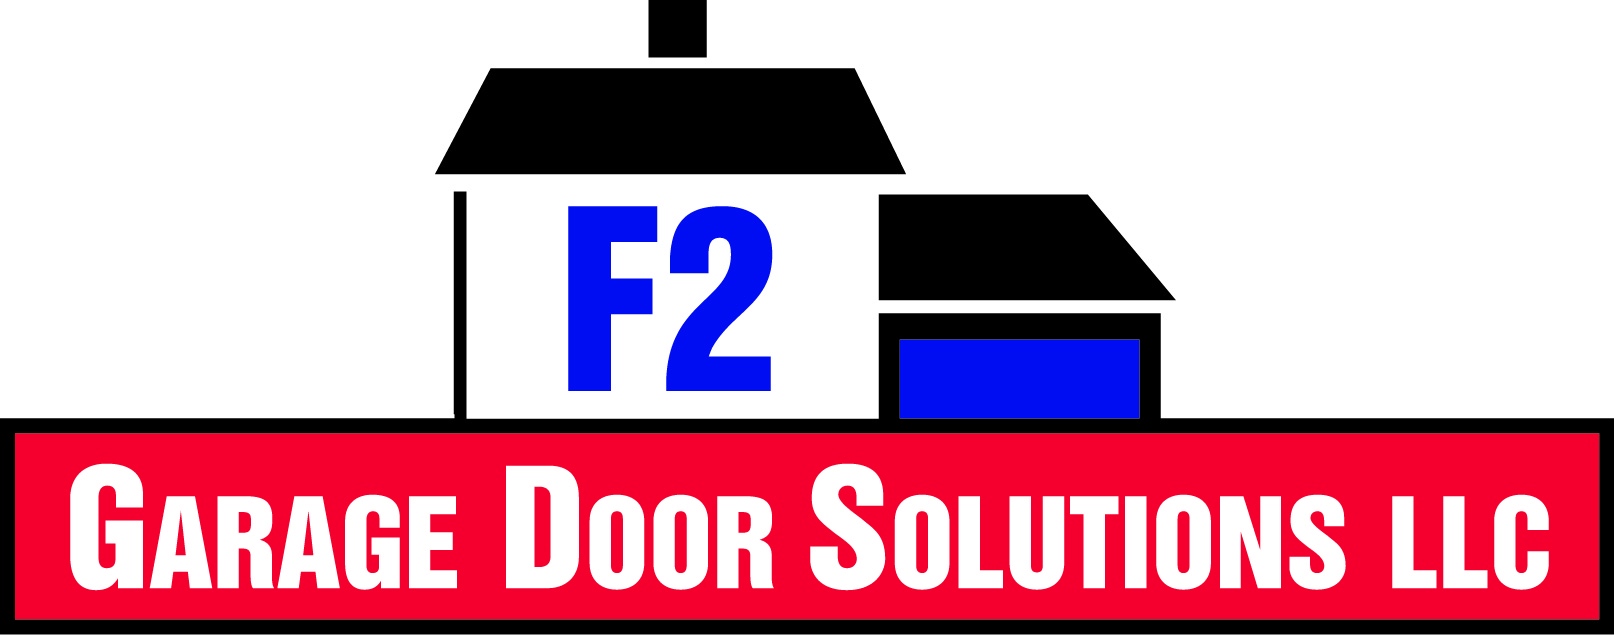 F2 Garage Door Solutions LLC Logo